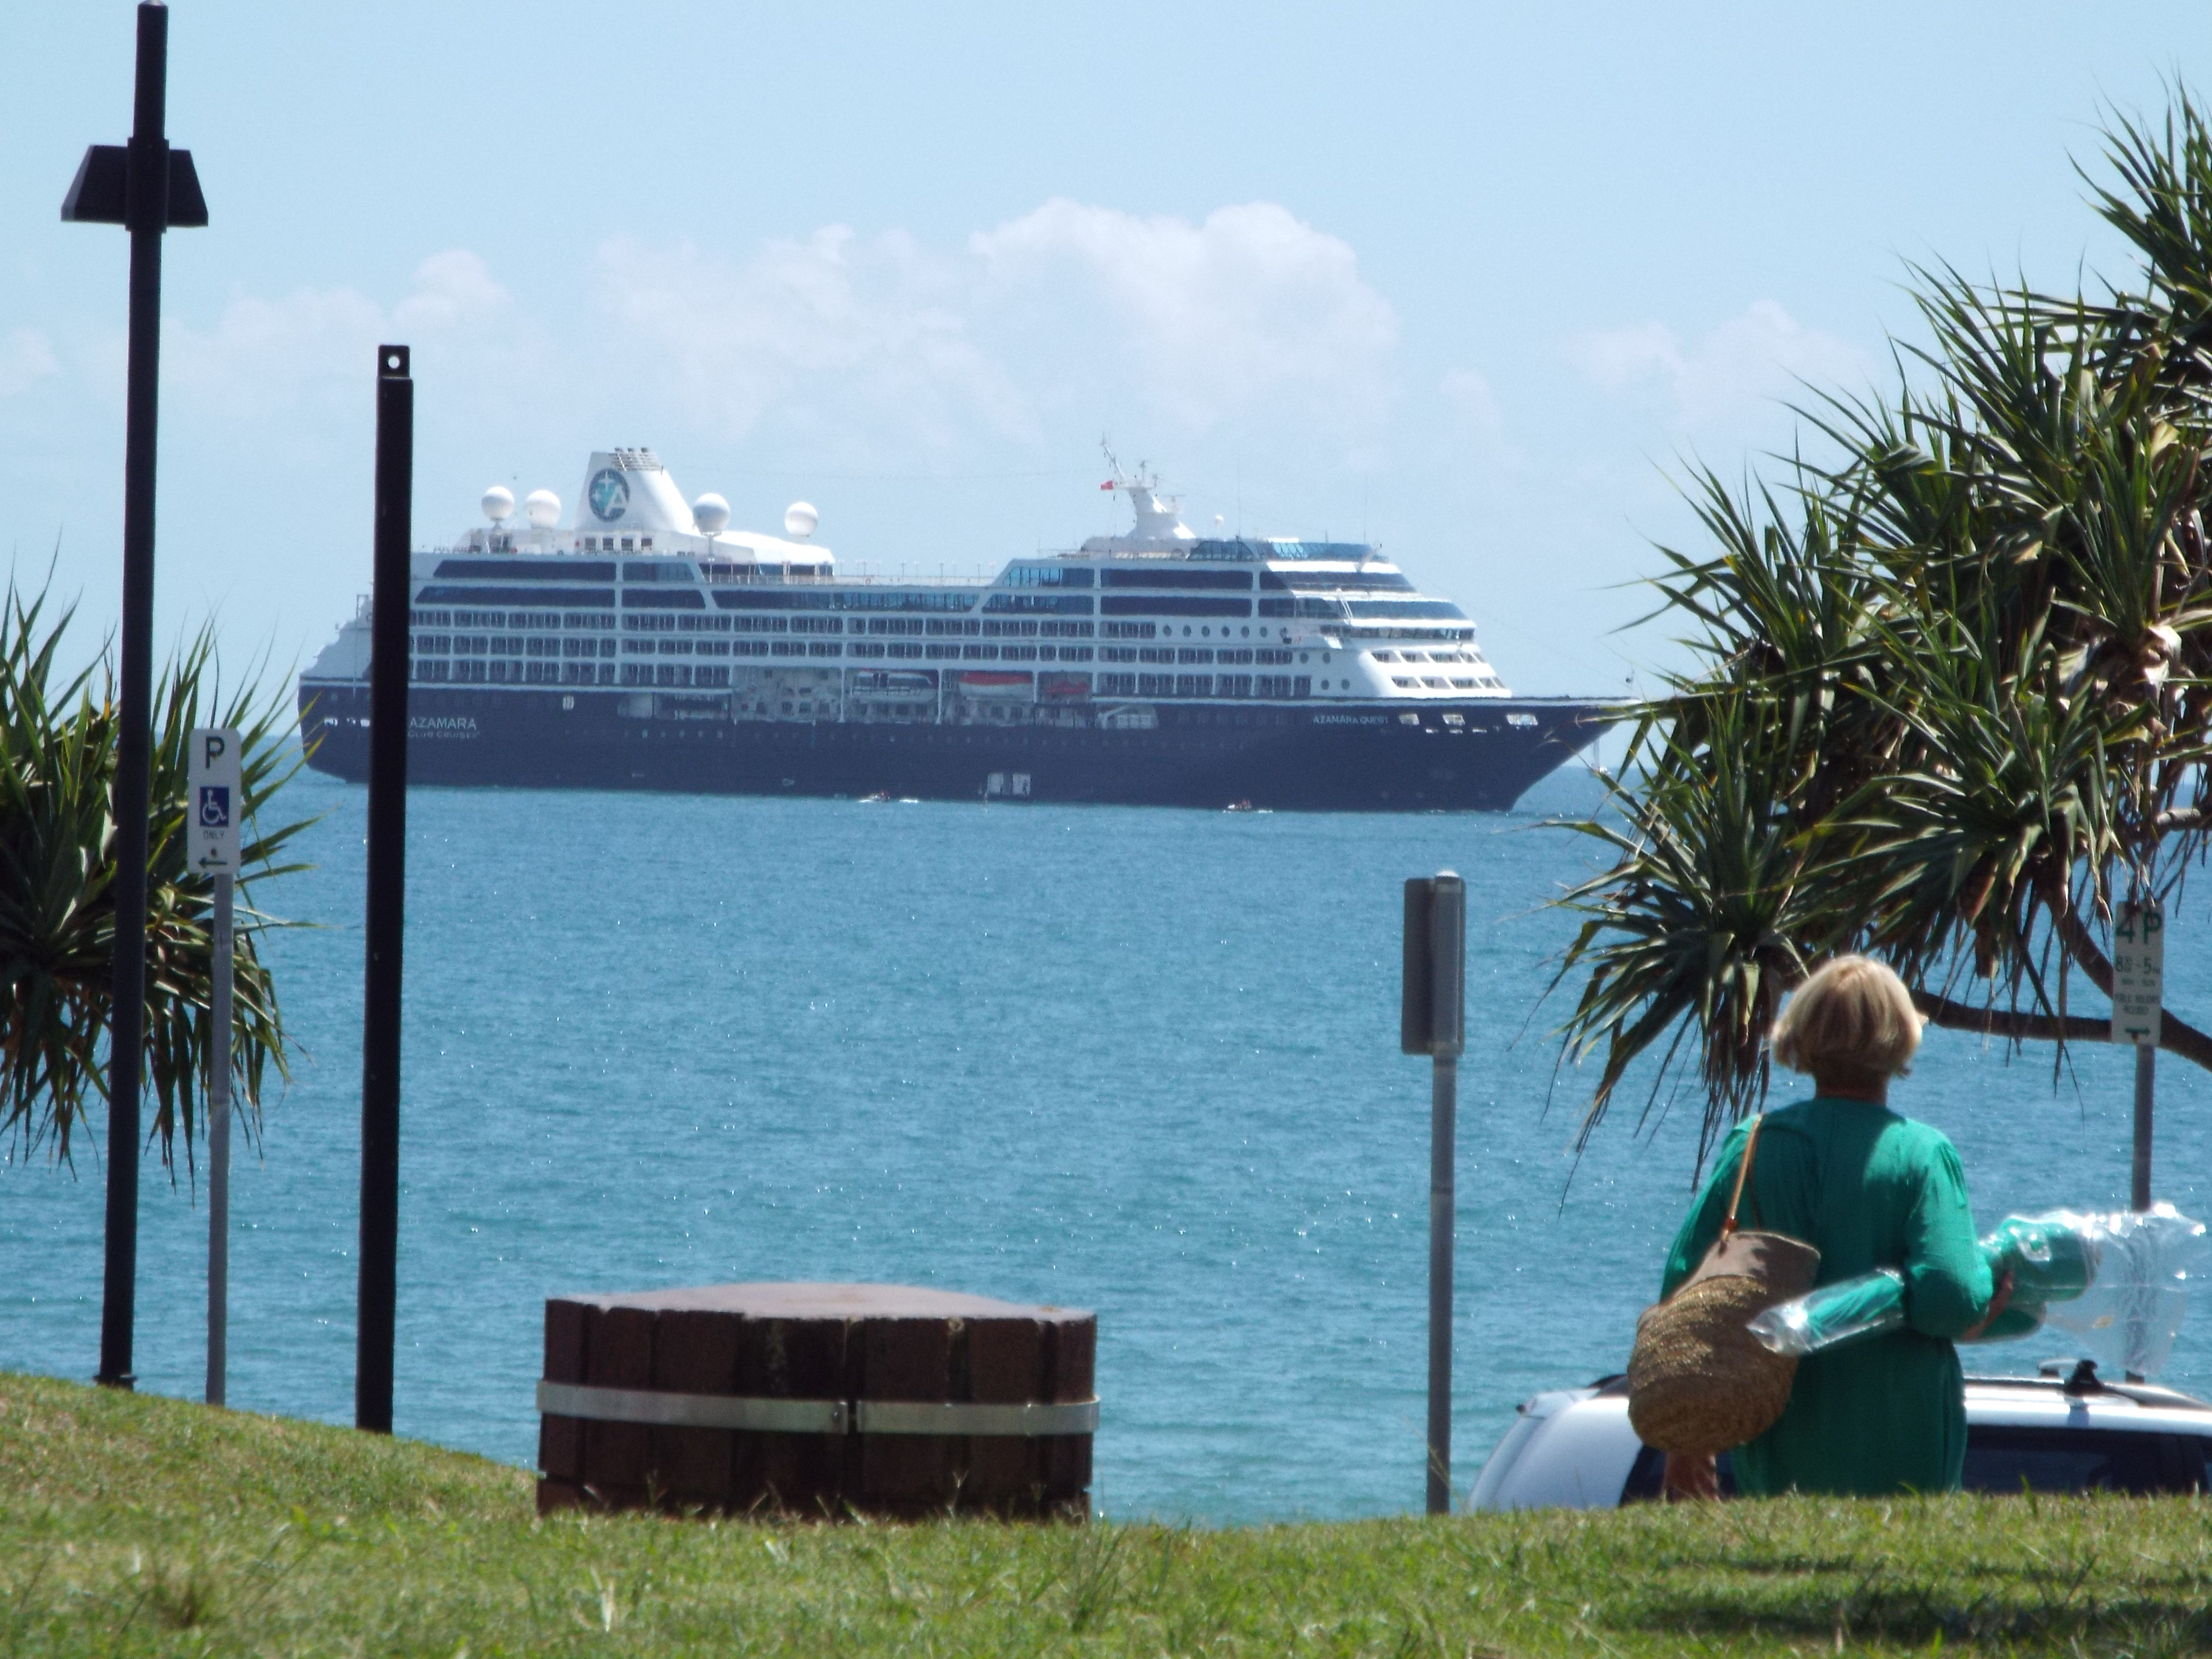 Azamara Quest in Mooloolaba Bay